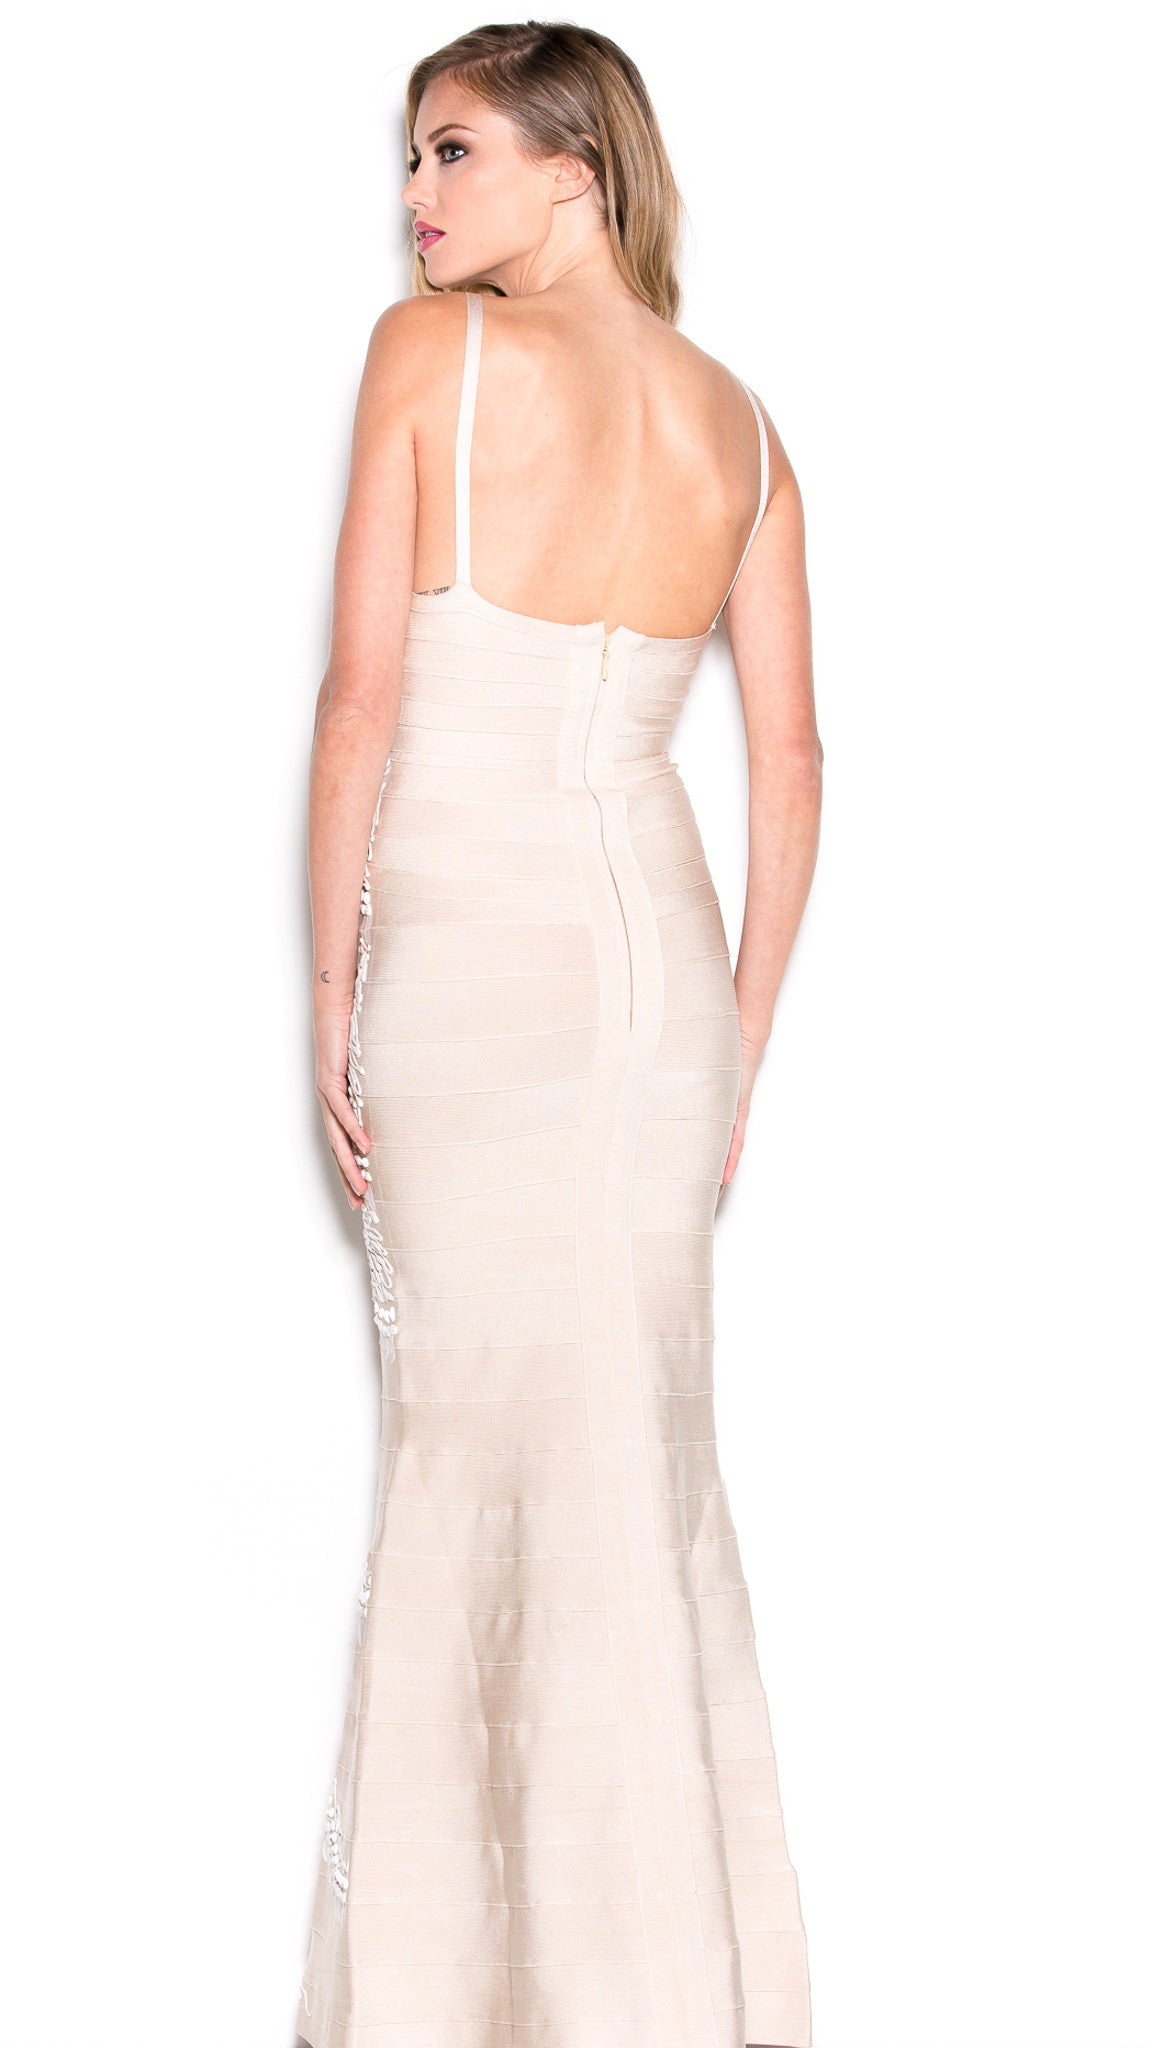 JATORIA BANDAGE GOWN IN NUDE WITH WHITE – HOLT